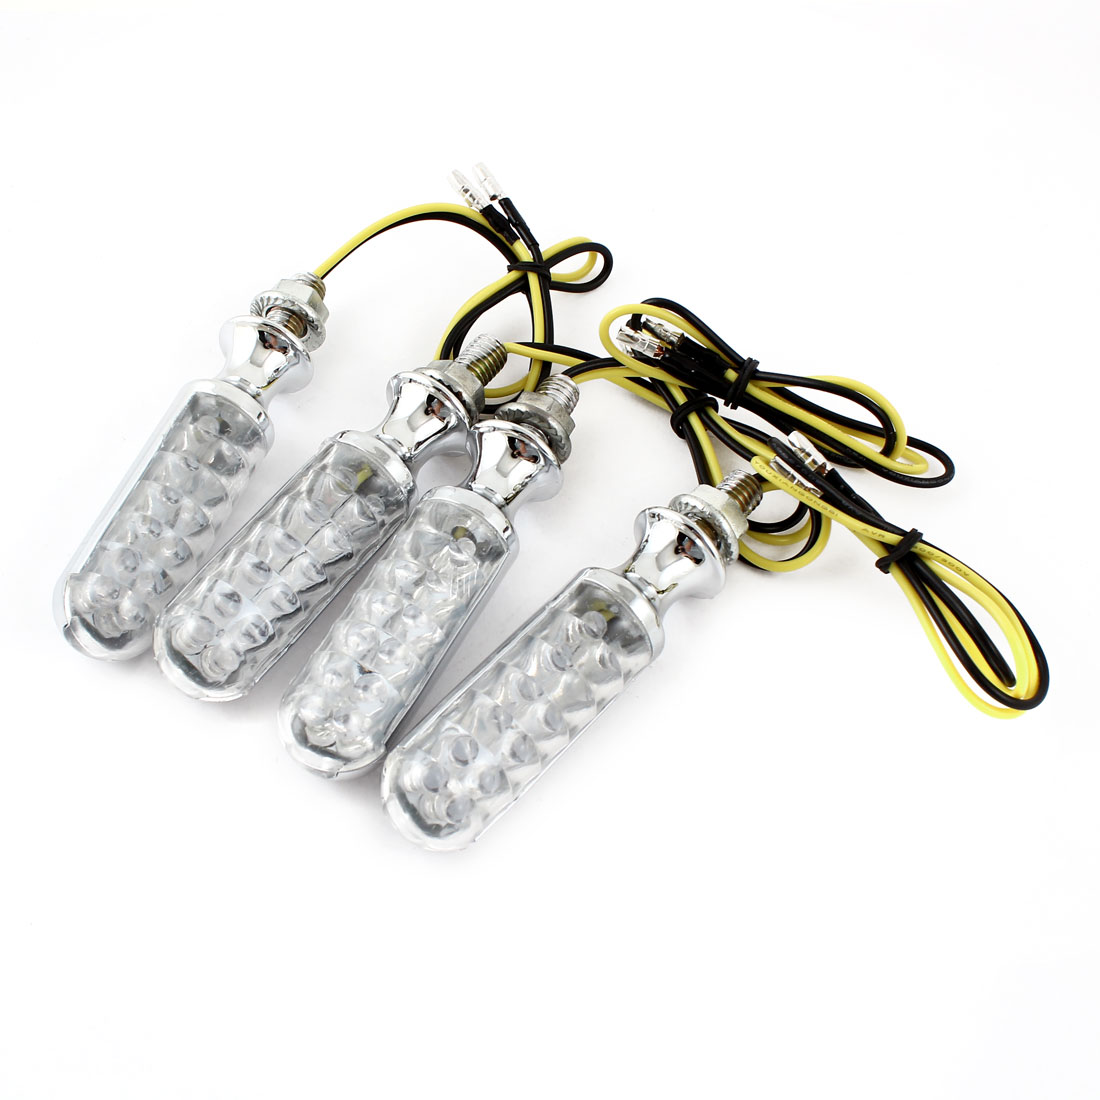 4 Pcs DC 12V Yellow 12 LED 8mm Bolt Dia Turn Signal Light Indicator Lamps for Motorcycle